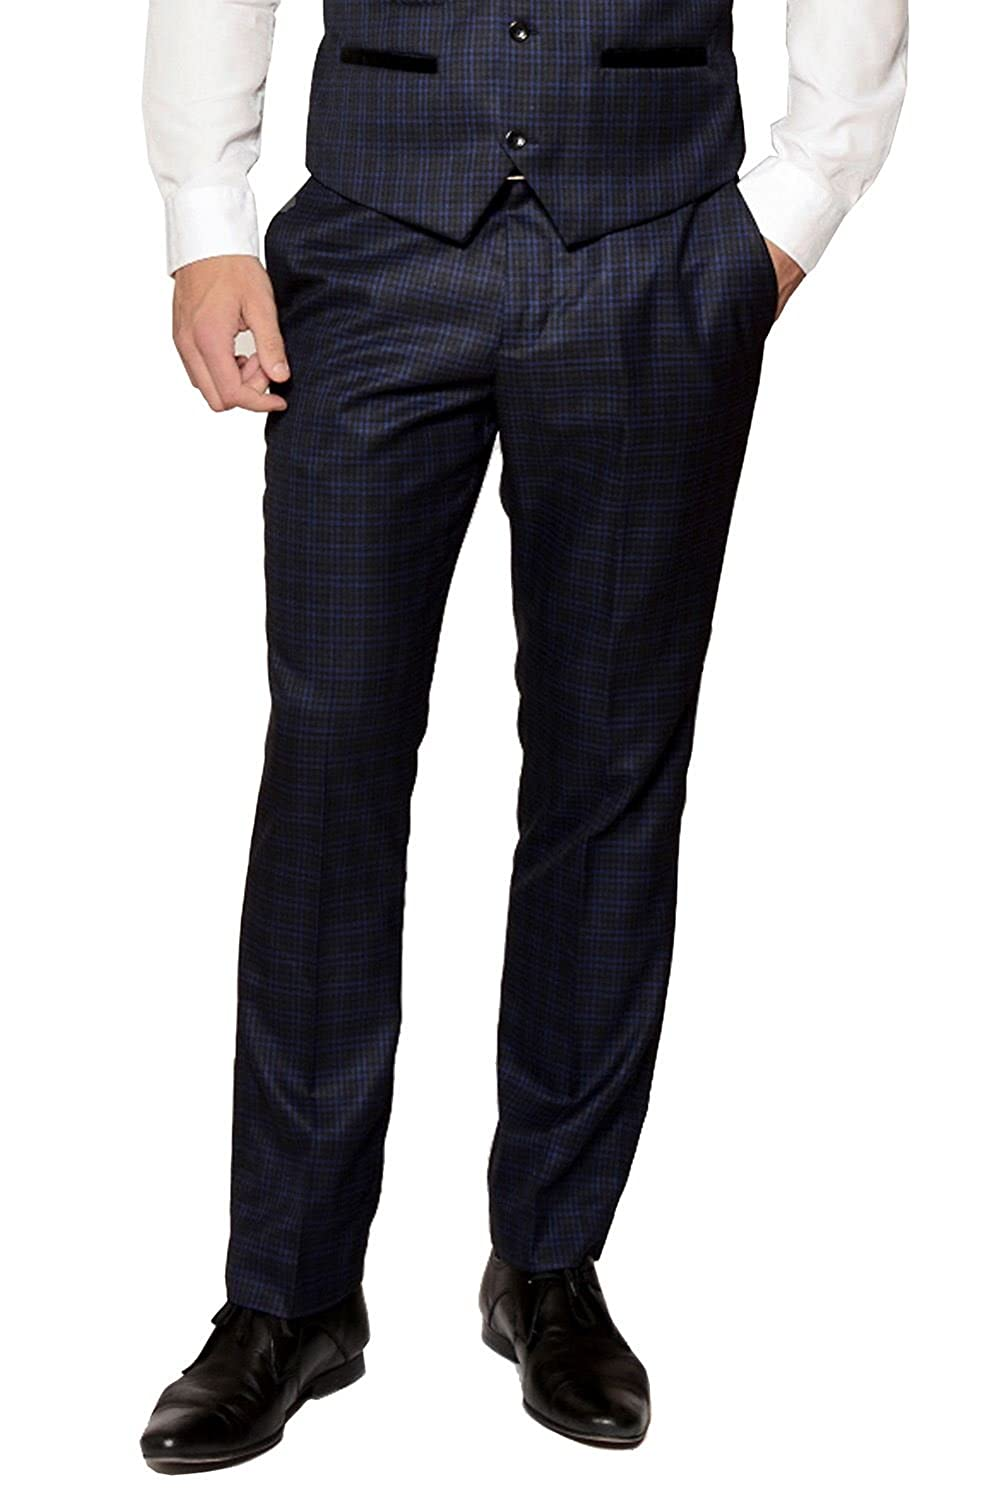 Mens Marc Darcy Designer Navy Check Suit Trouser Work Wedding Size 28-46 Available